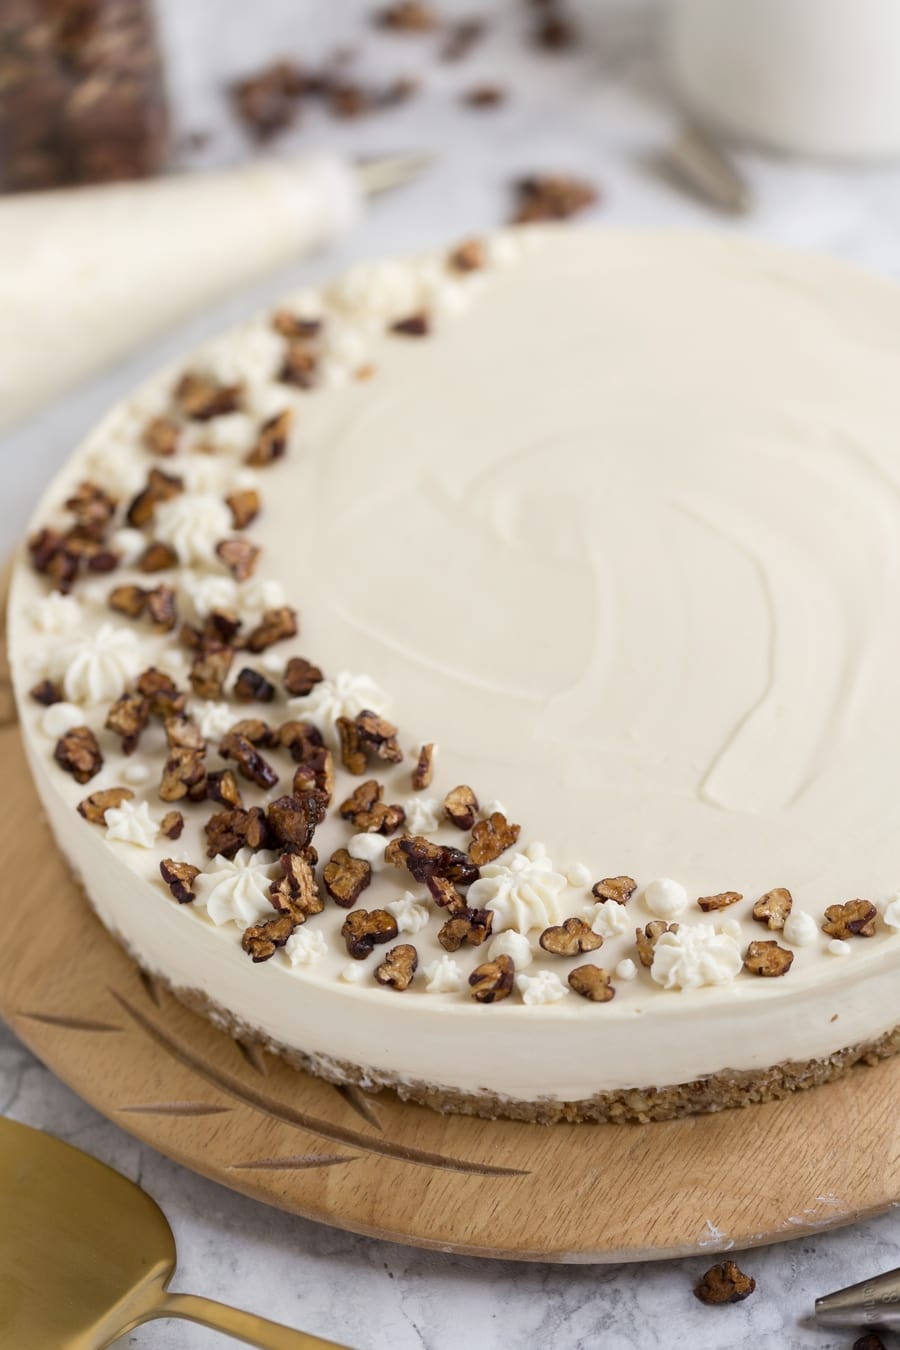 No-bake maple syrup cheesecake on wooden plate.